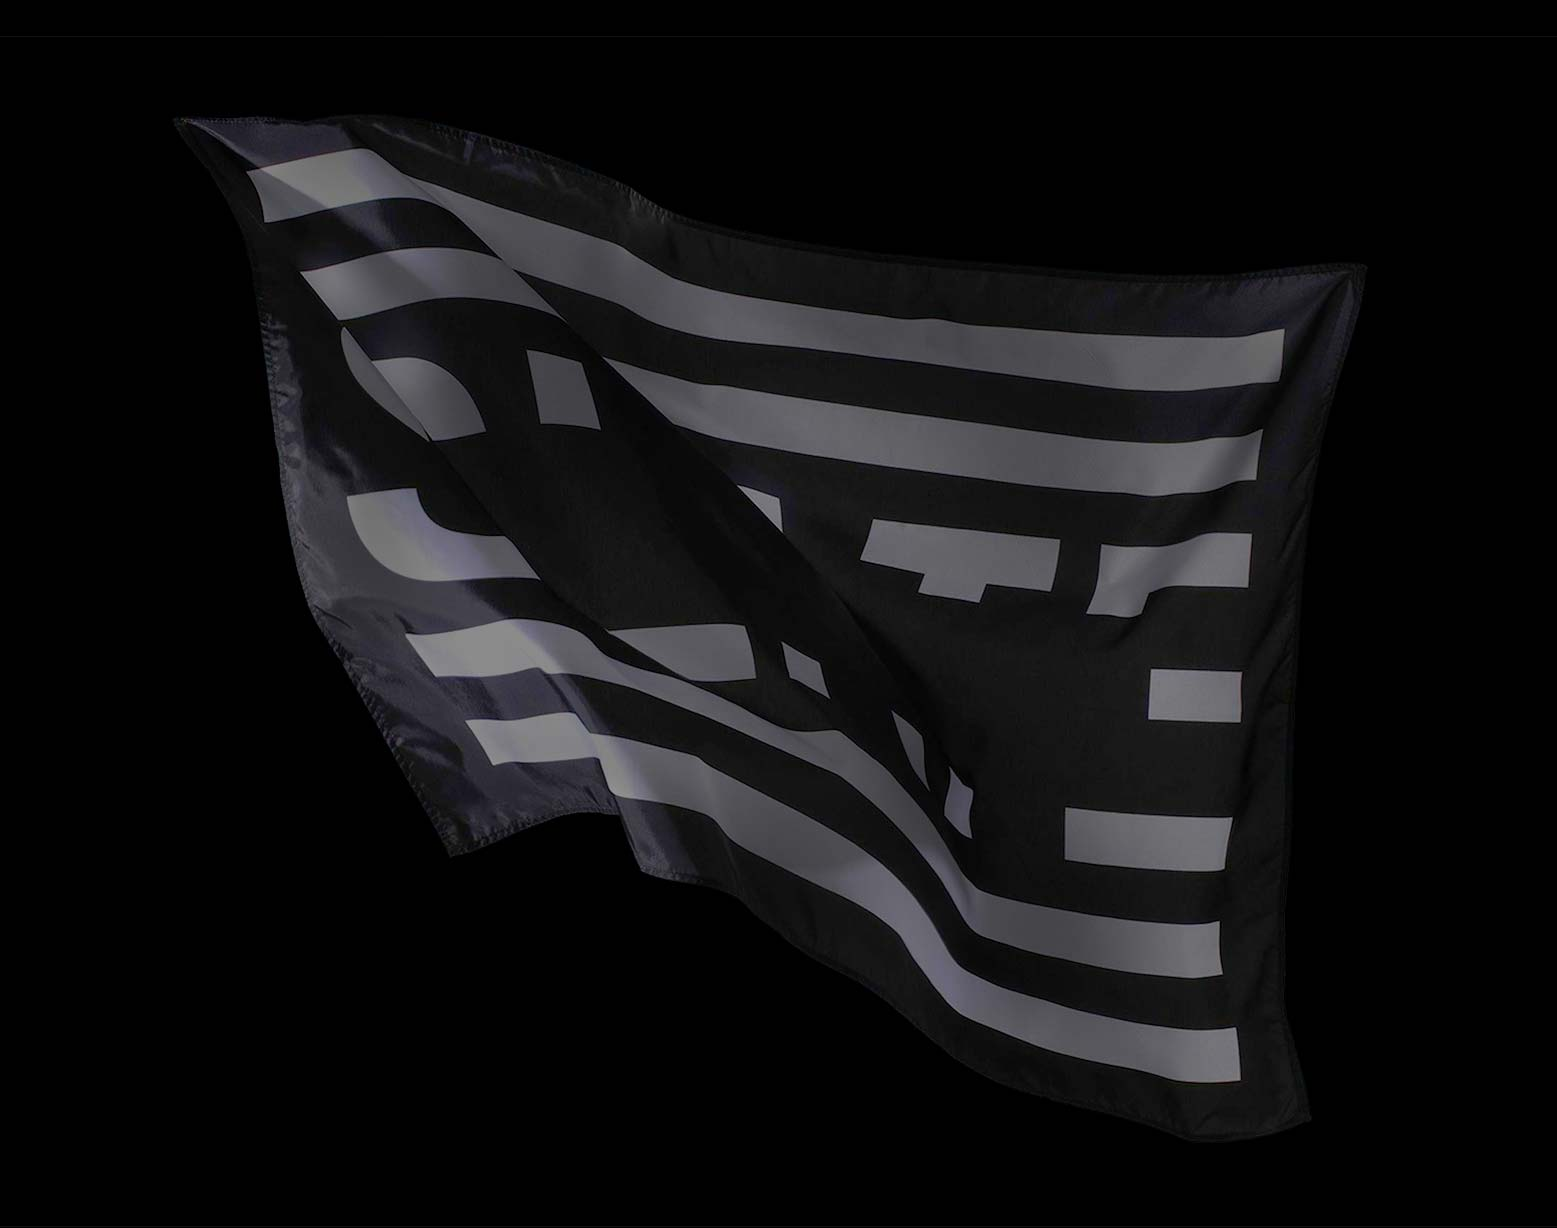 SLATE_flag_web5_gray6